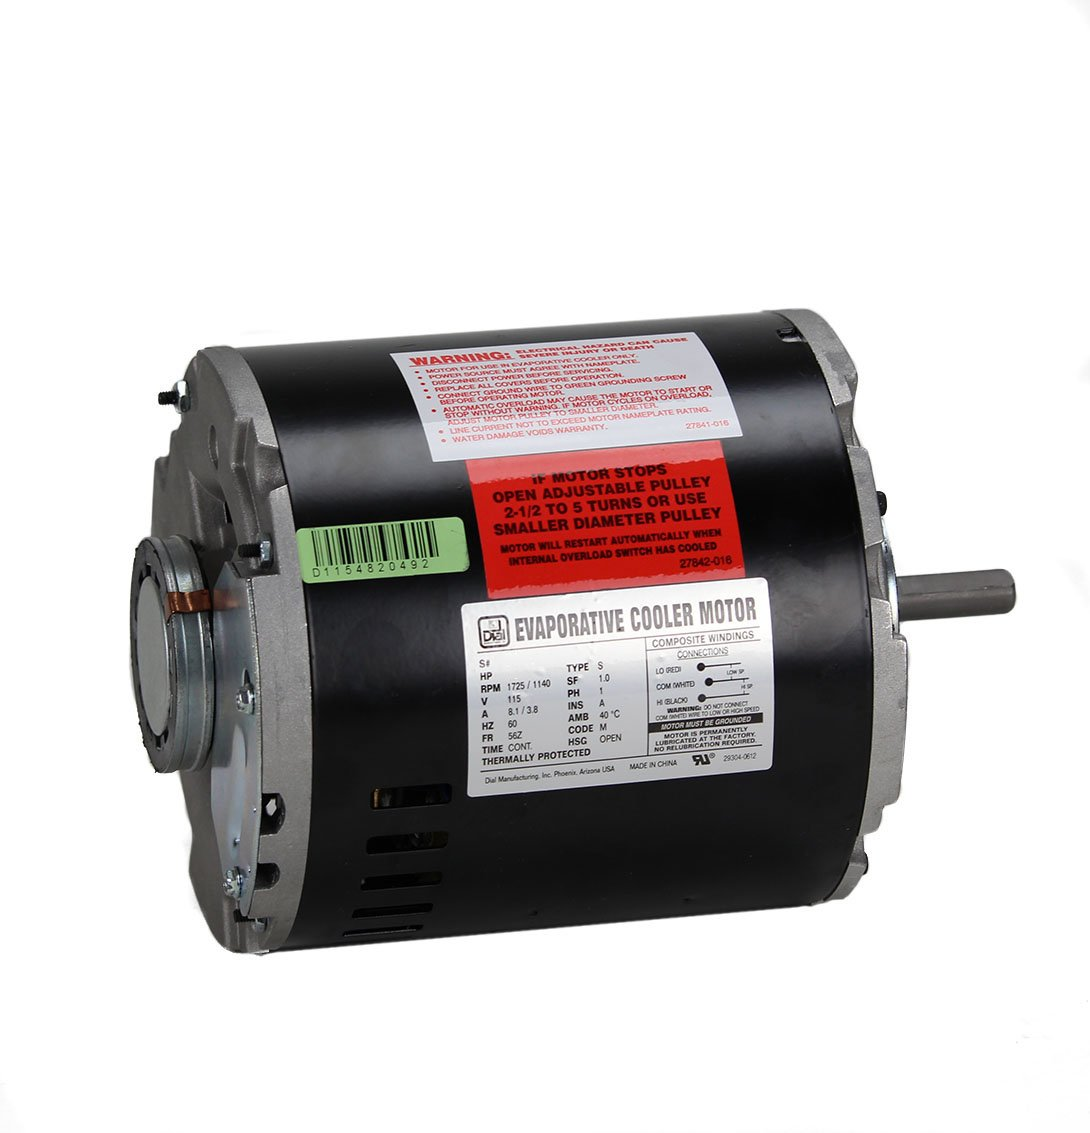 Amazon.com: Dial 2-Speed 1/2 HP 115- Volt Permanently Lubricated Evaporative  Cooler Motor: Home Improvement